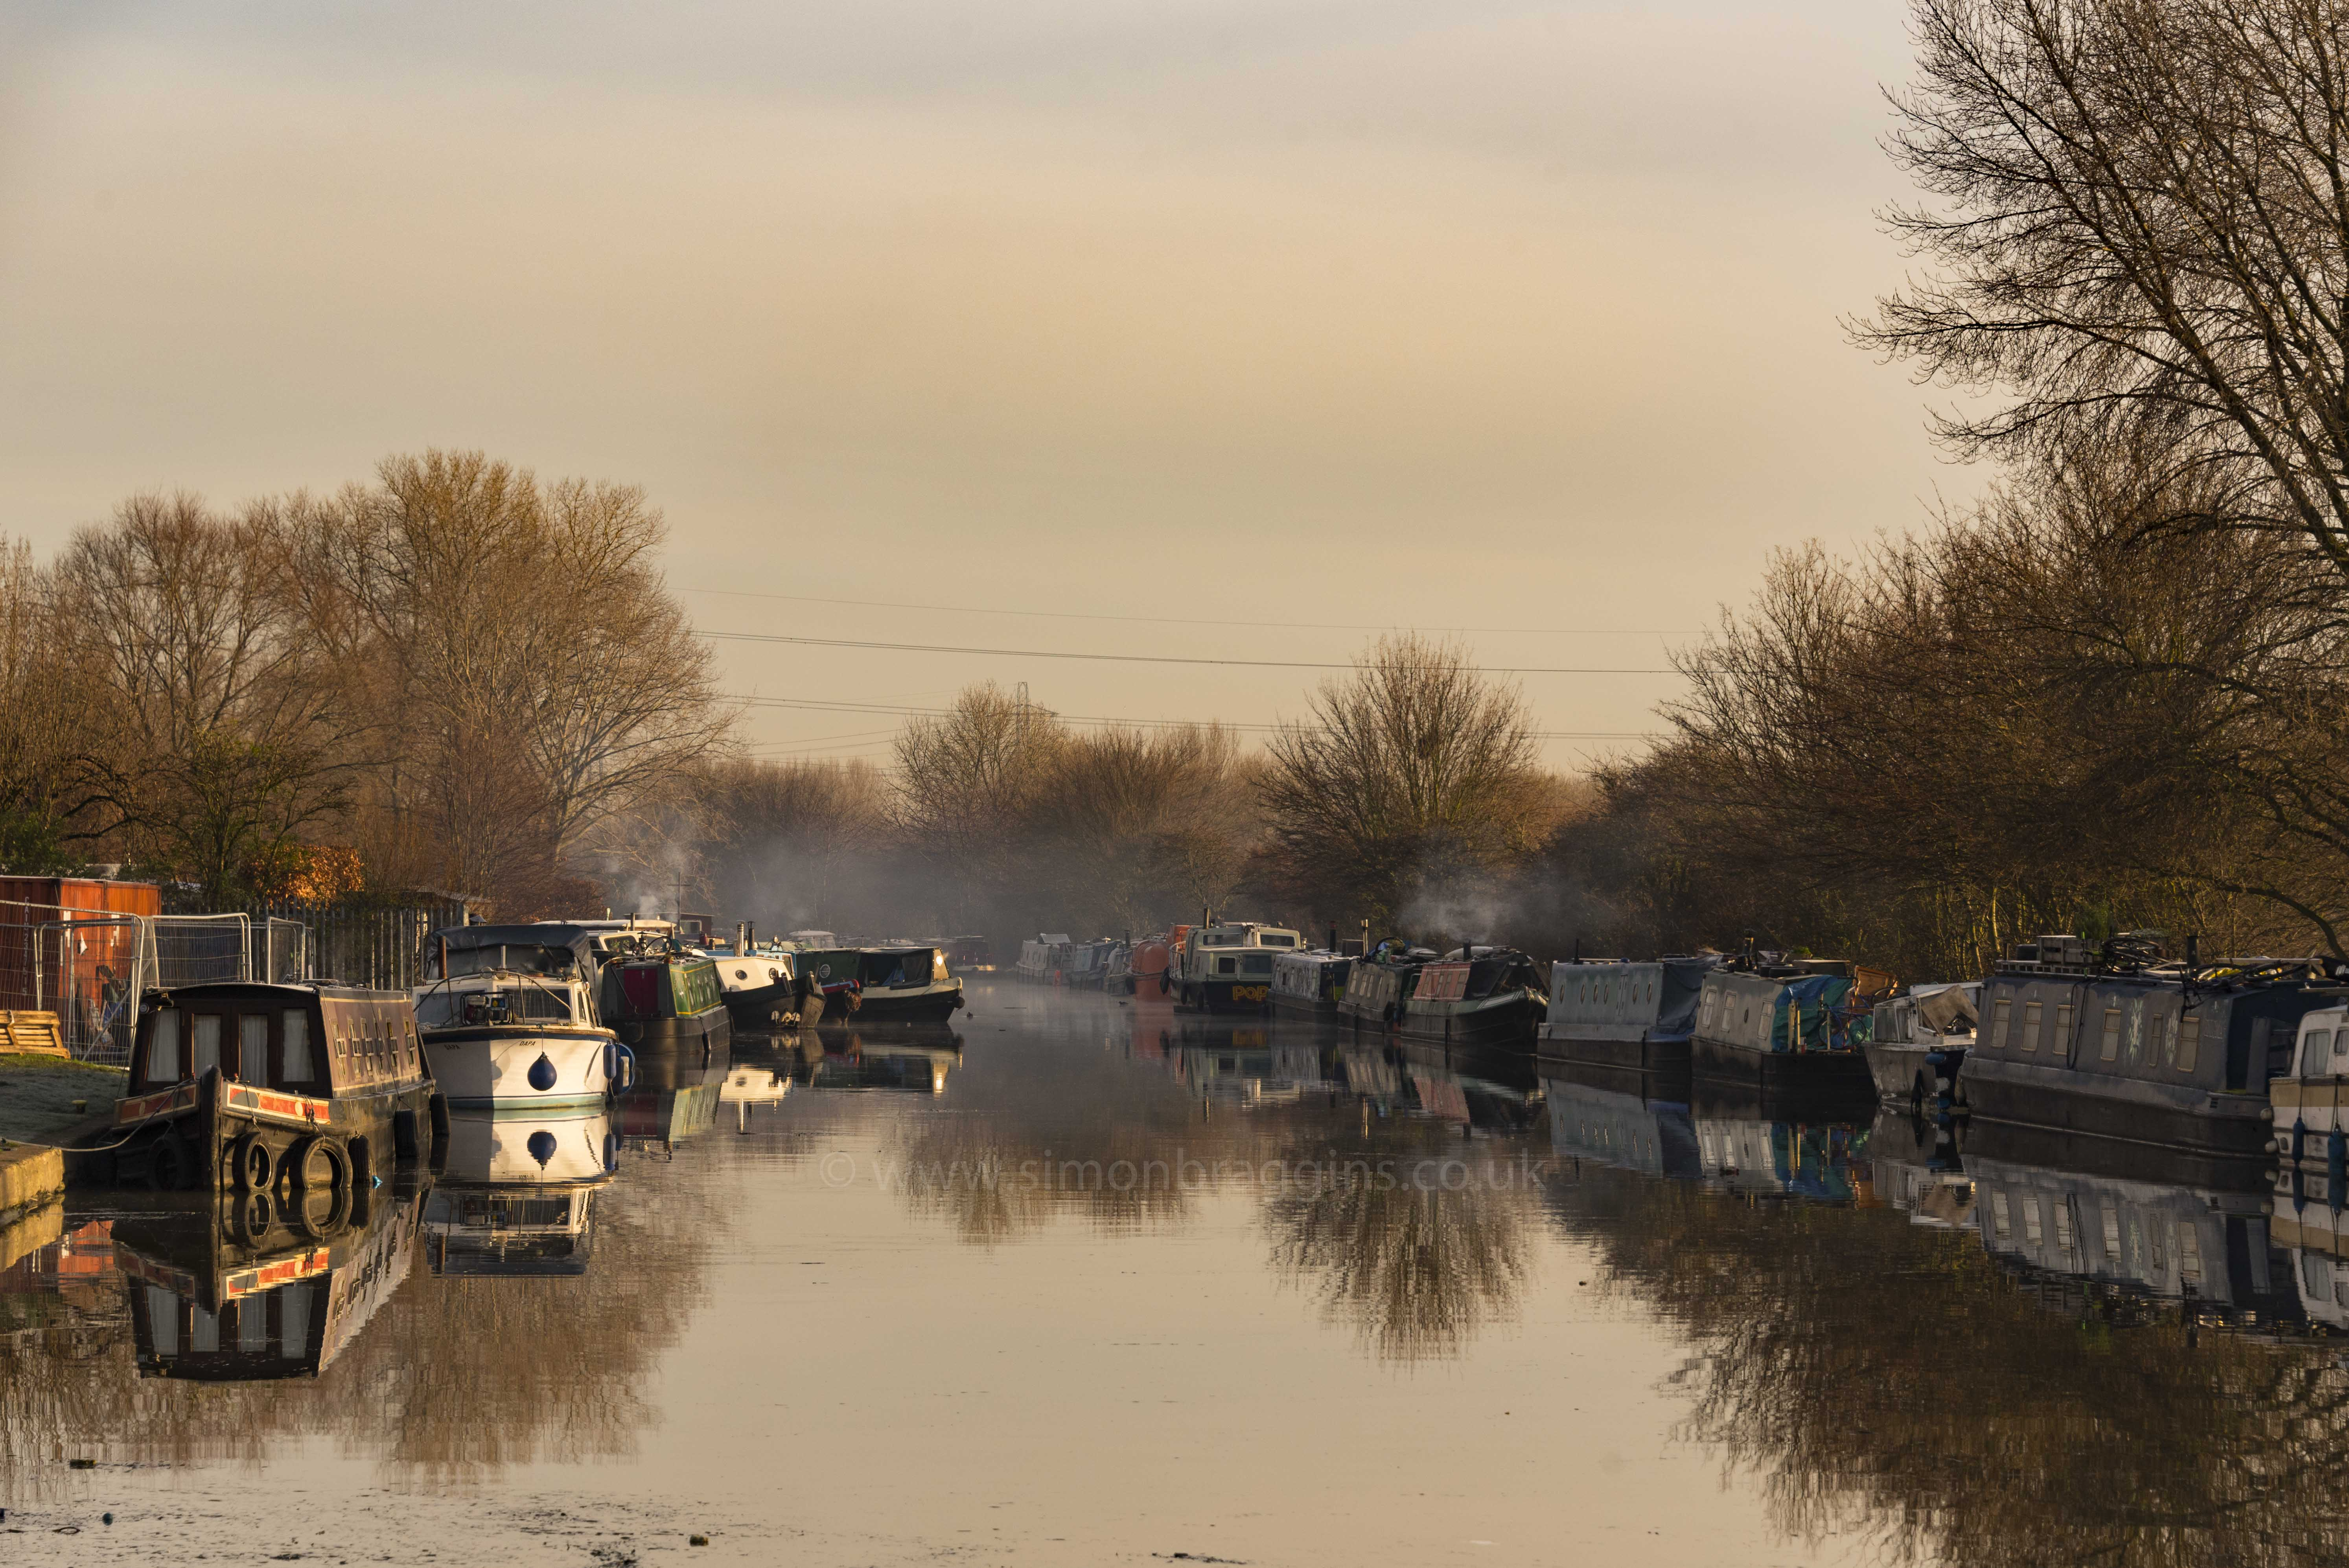 Frosty reflections: A calm and frosty morning at  Stonebridge Lock, January 2018